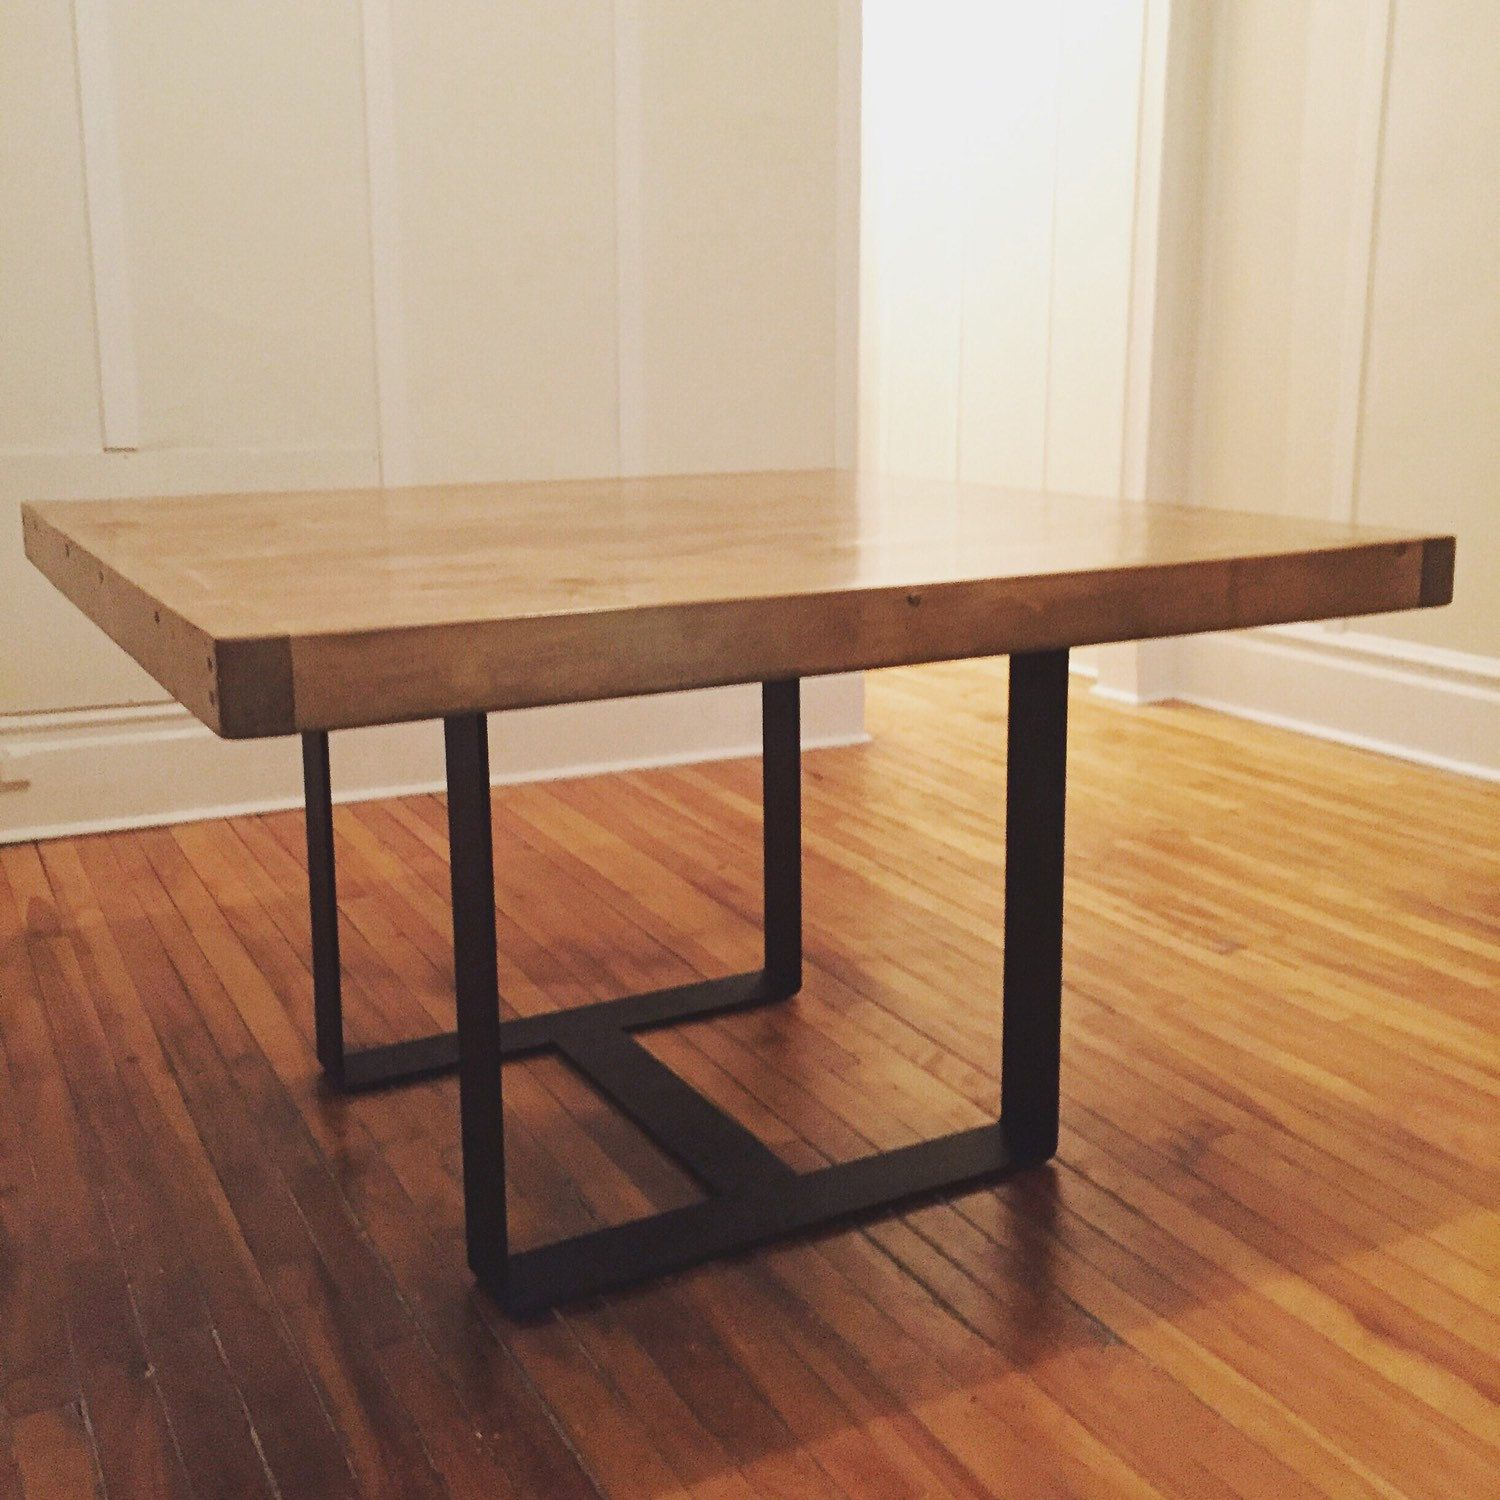 Our Brand New Squared Dining Table With 4 Wrought Iron Legs